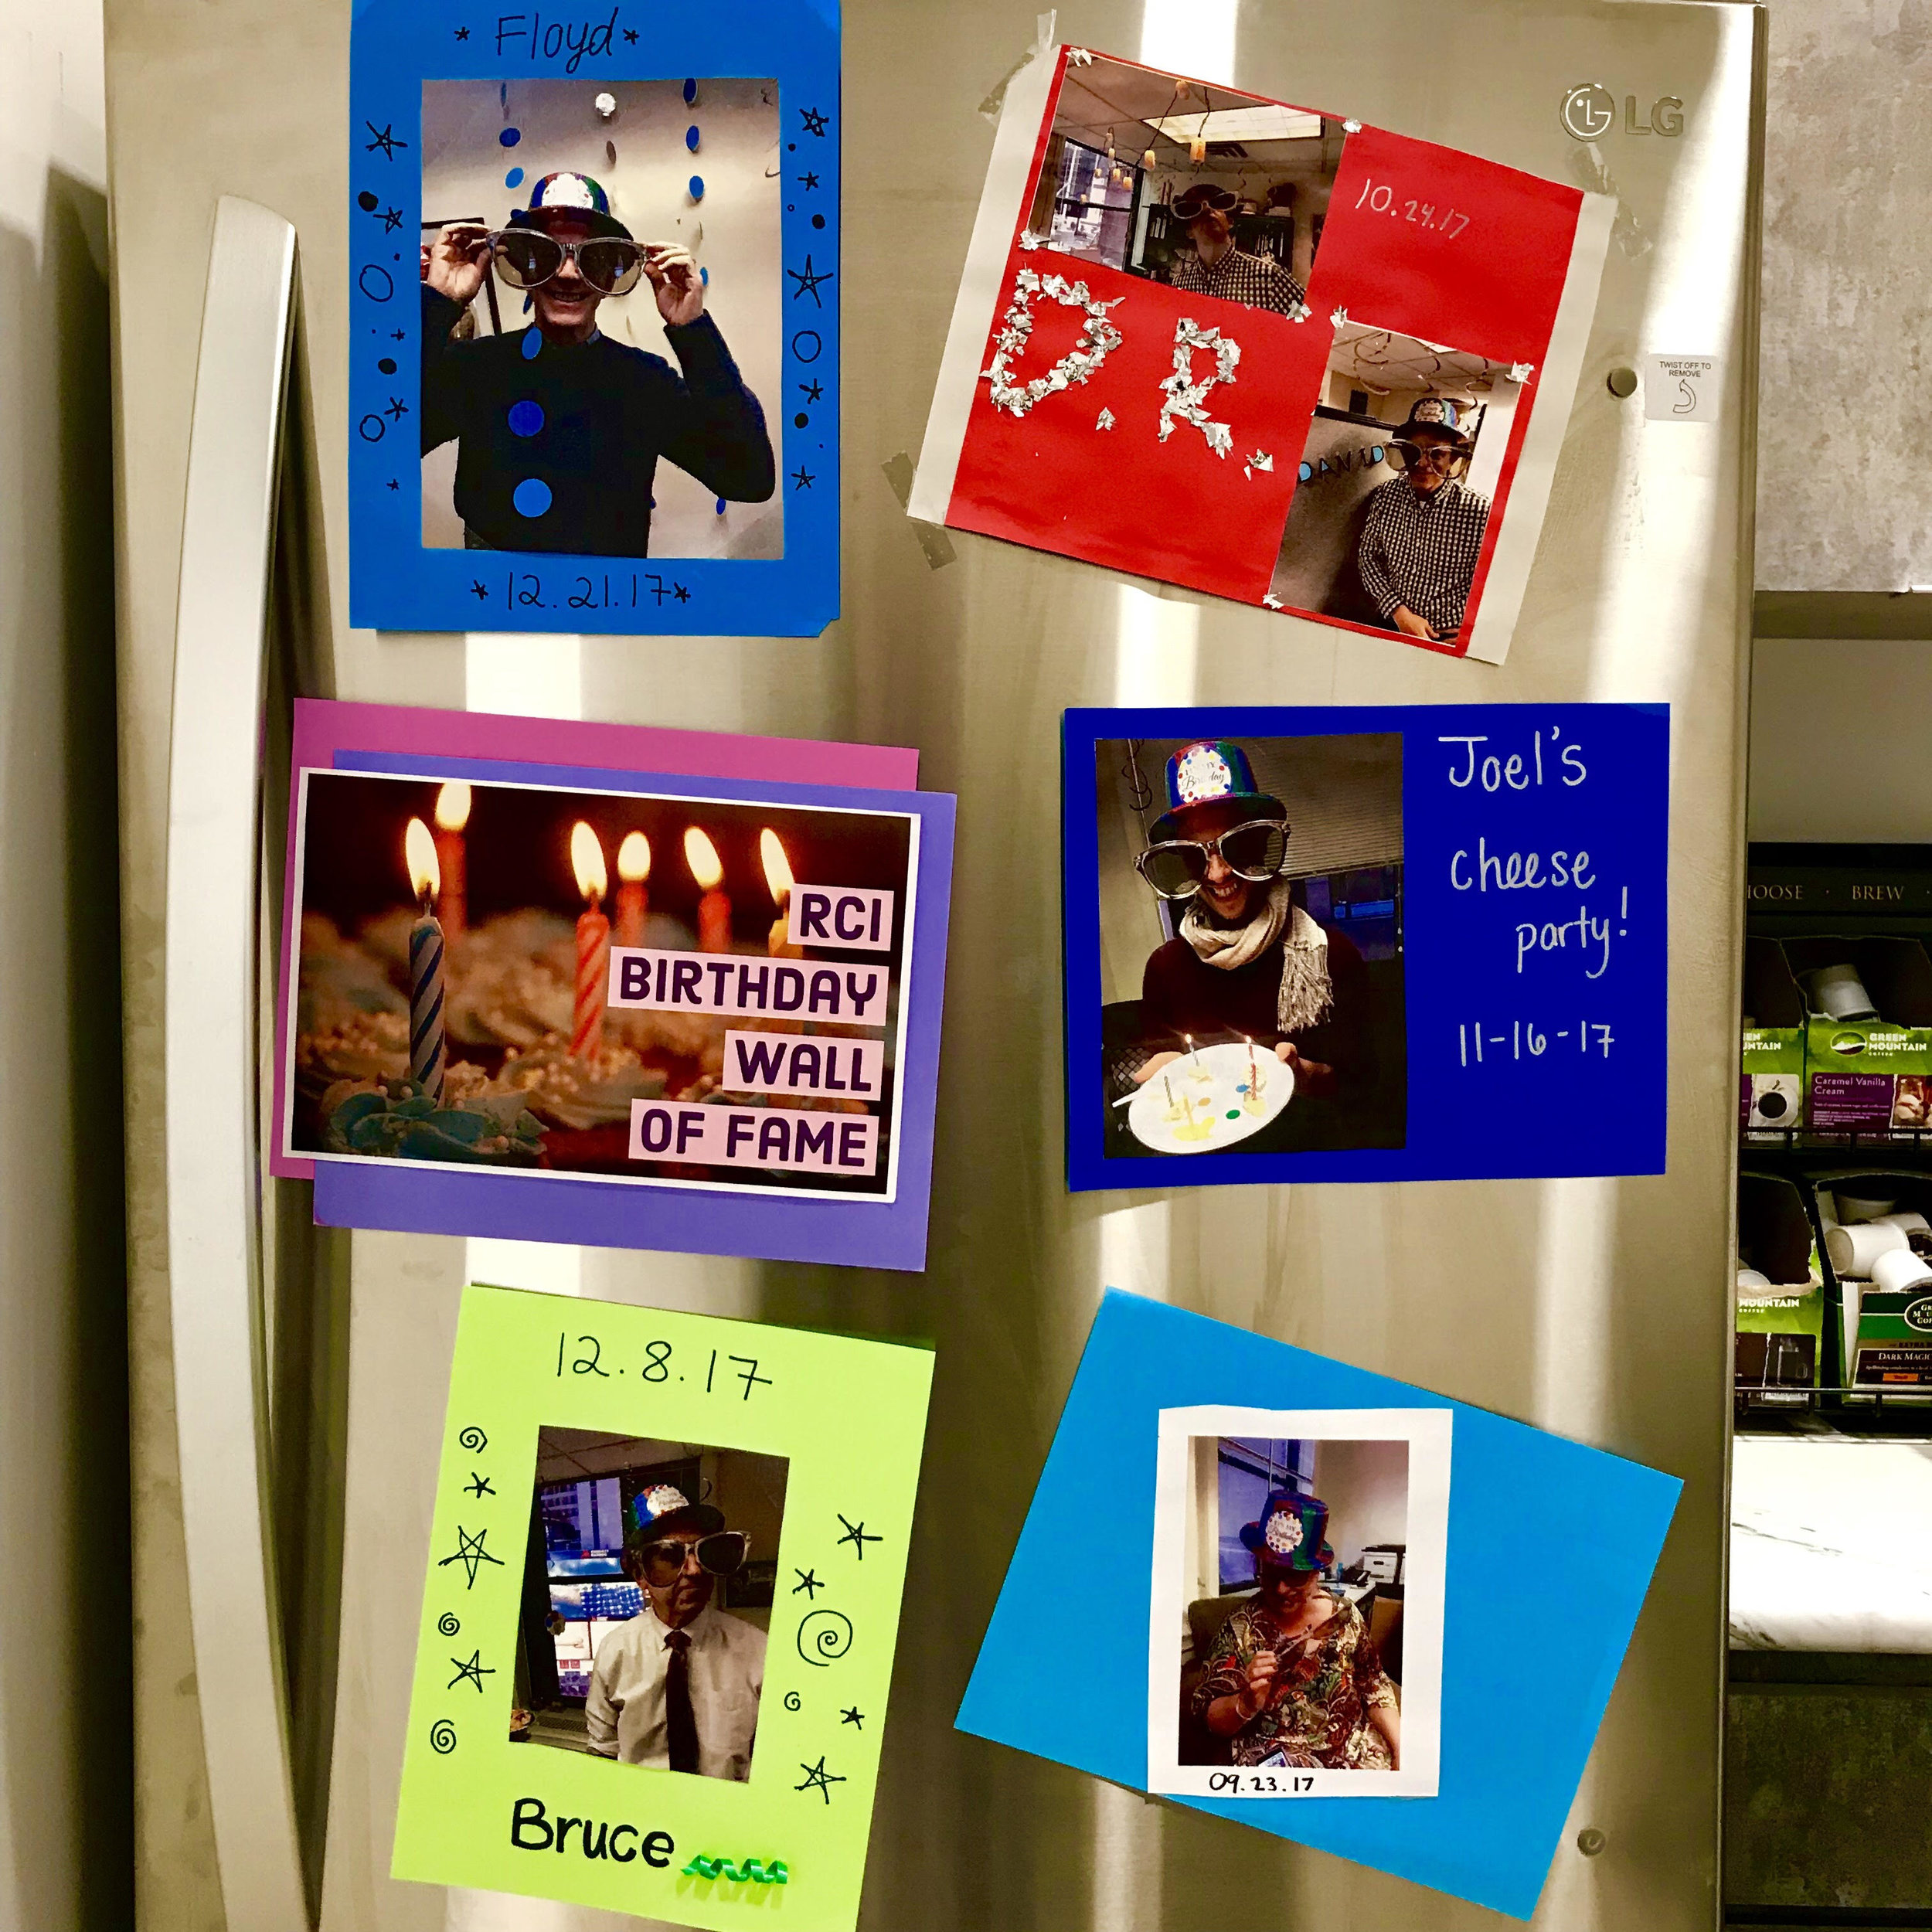 The infamous birthday wall now has a new home on our brand new refrigerator in our full sized kitchen!